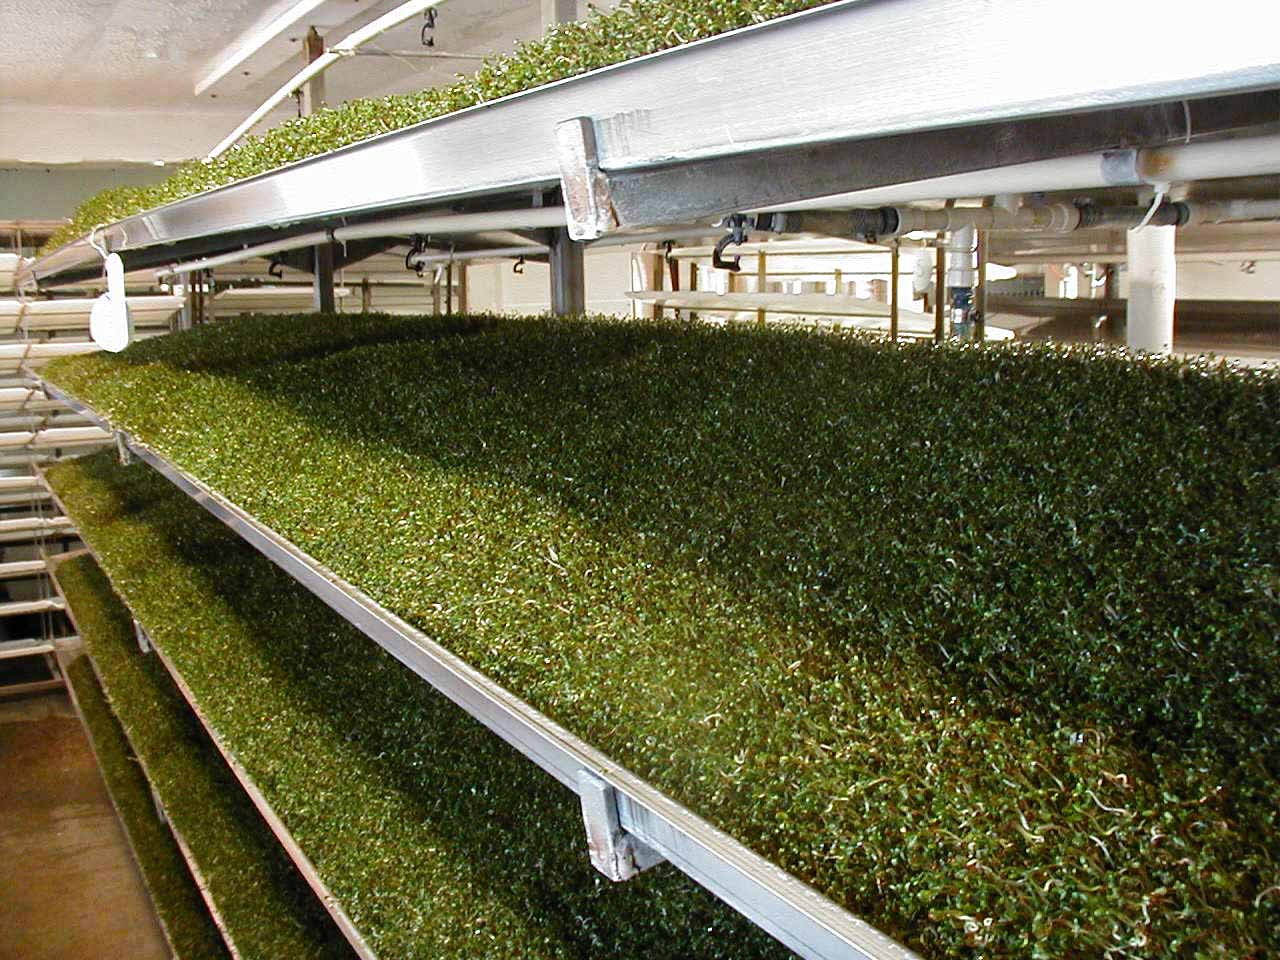 Since 1996 there have been at least 30 reported outbreaks of foodborne illness associated with sprouts. A new UGA treatment holds promise to help lower those statistics.